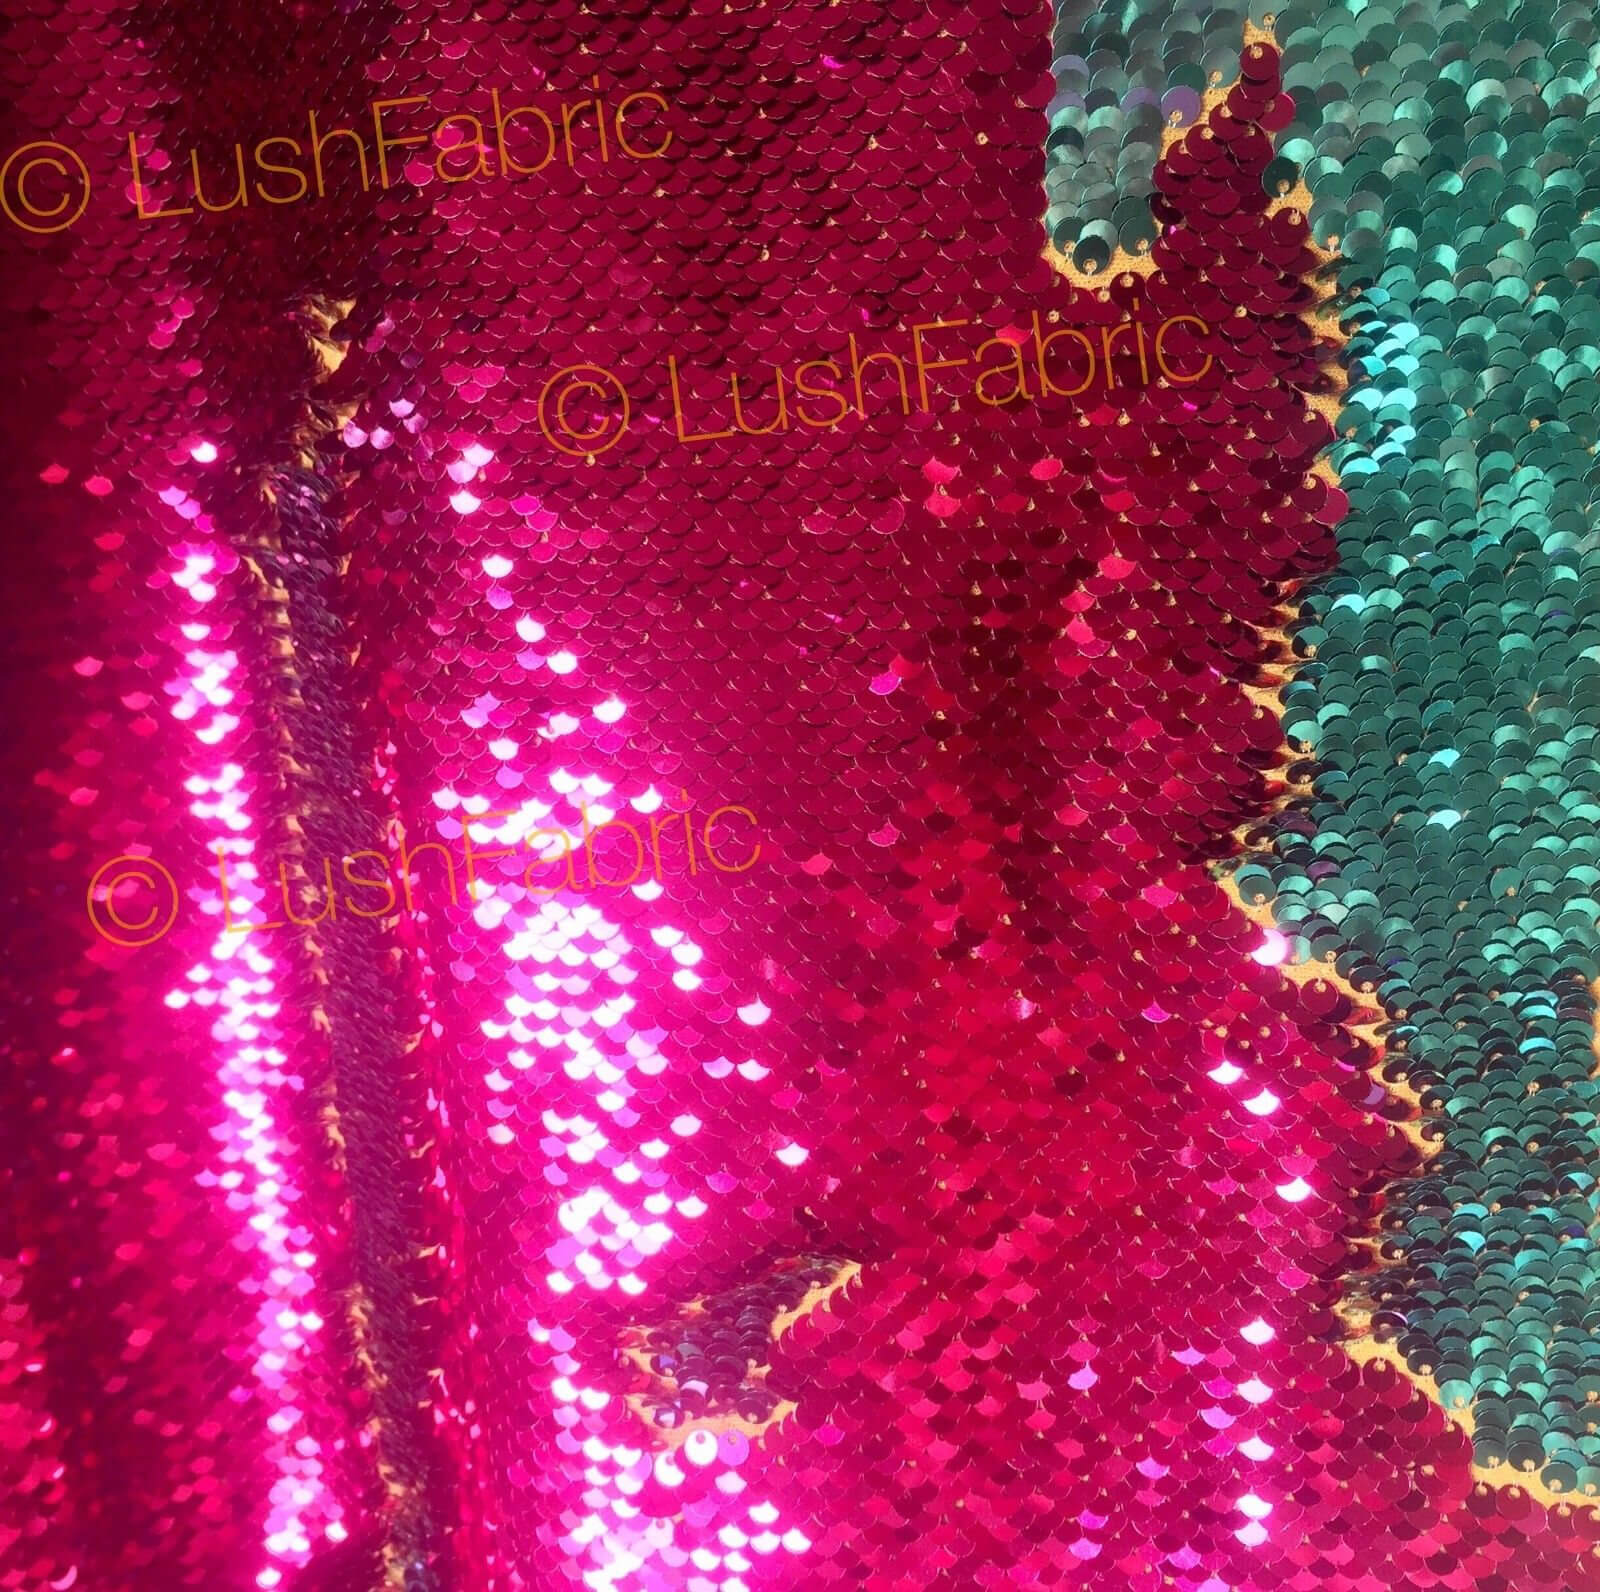 mermaid-reversible-5mm-sequin-fabric-flip-two-tone-stretch-material-130cm-wide-hot-pink-blue-sequins-5aad4a0b1.jpg